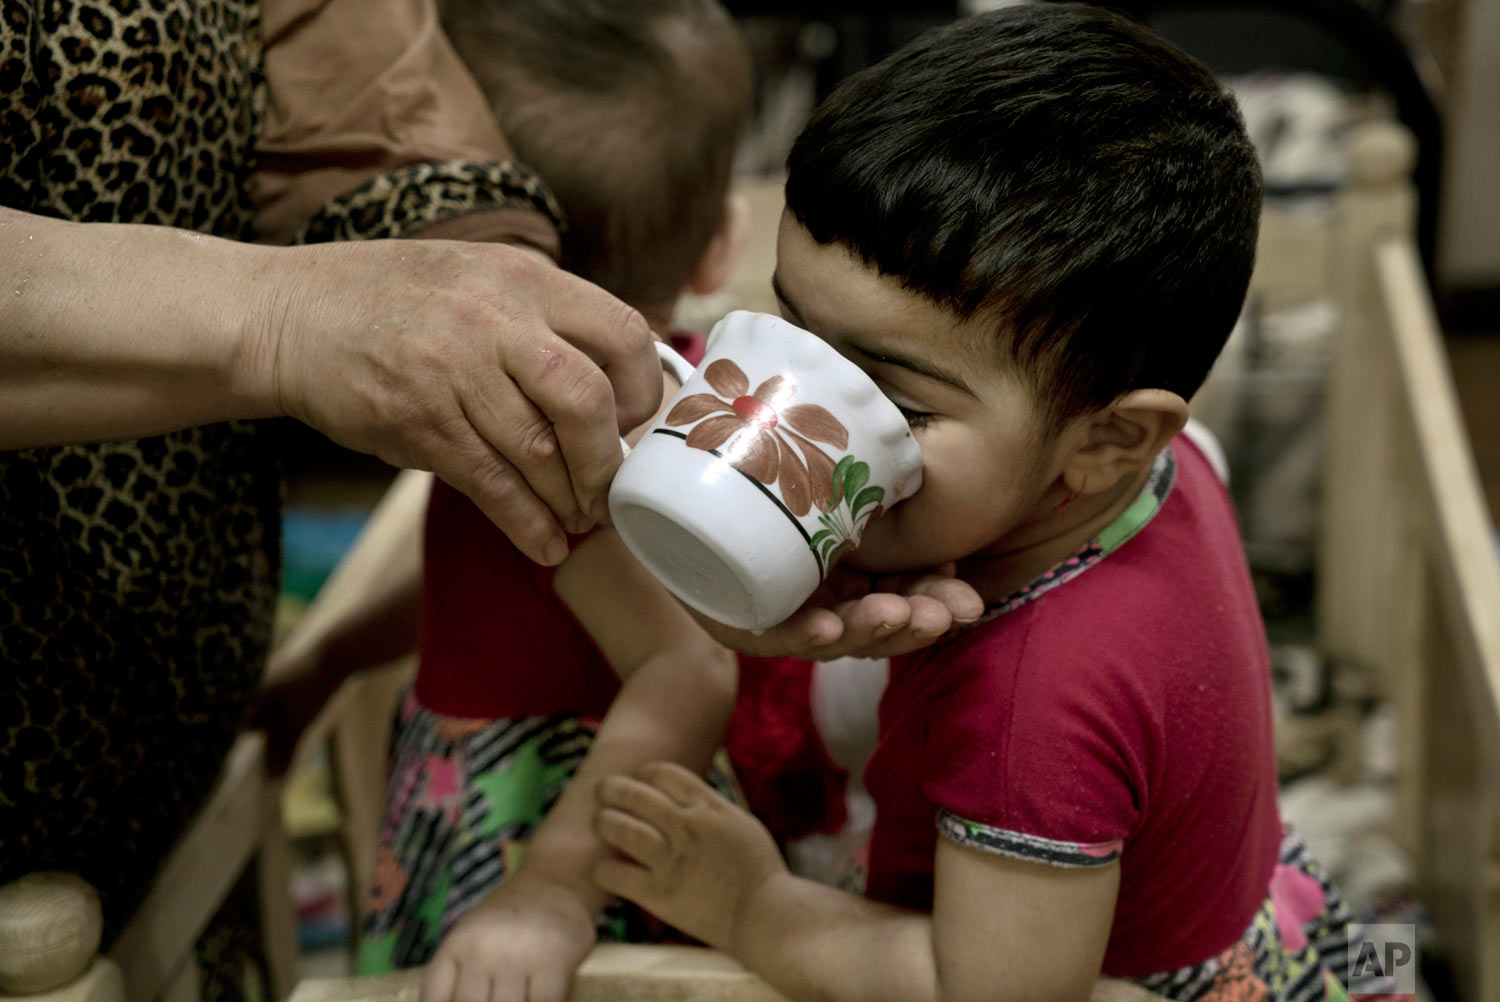 A toddler drinks from a cup at the state-run Salhiya Orphanage, which now hosts foreign and Iraqi children orphaned by Islamic State militants and the battle to oust them, in Baghdad, Iraq. (AP Photo/Maya Alleruzzo)